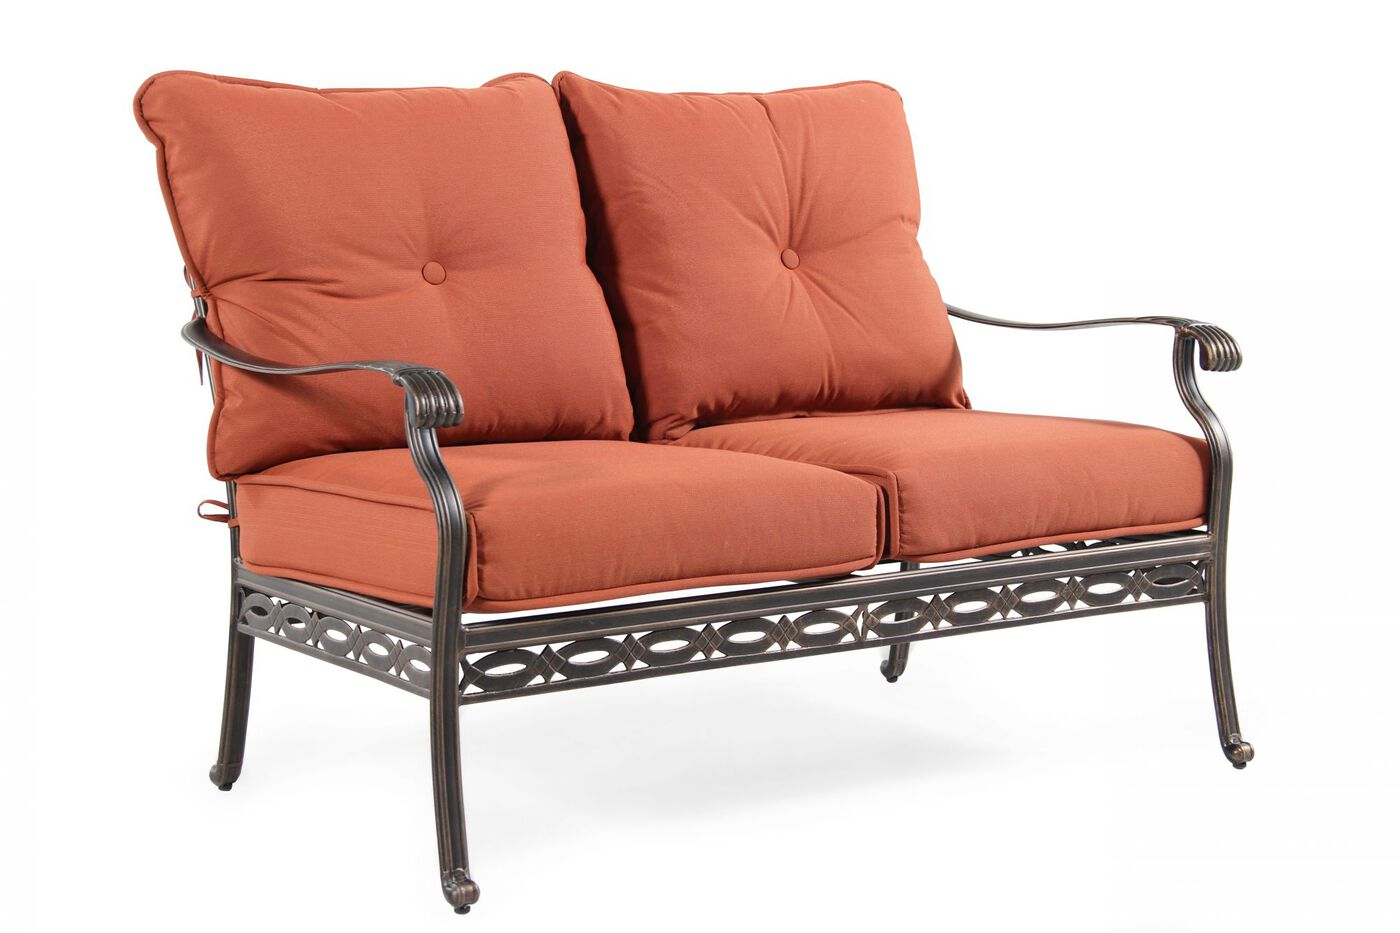 Button Tufted Traditional Loveseat With Cushion In Red Mathis Brothers Furniture